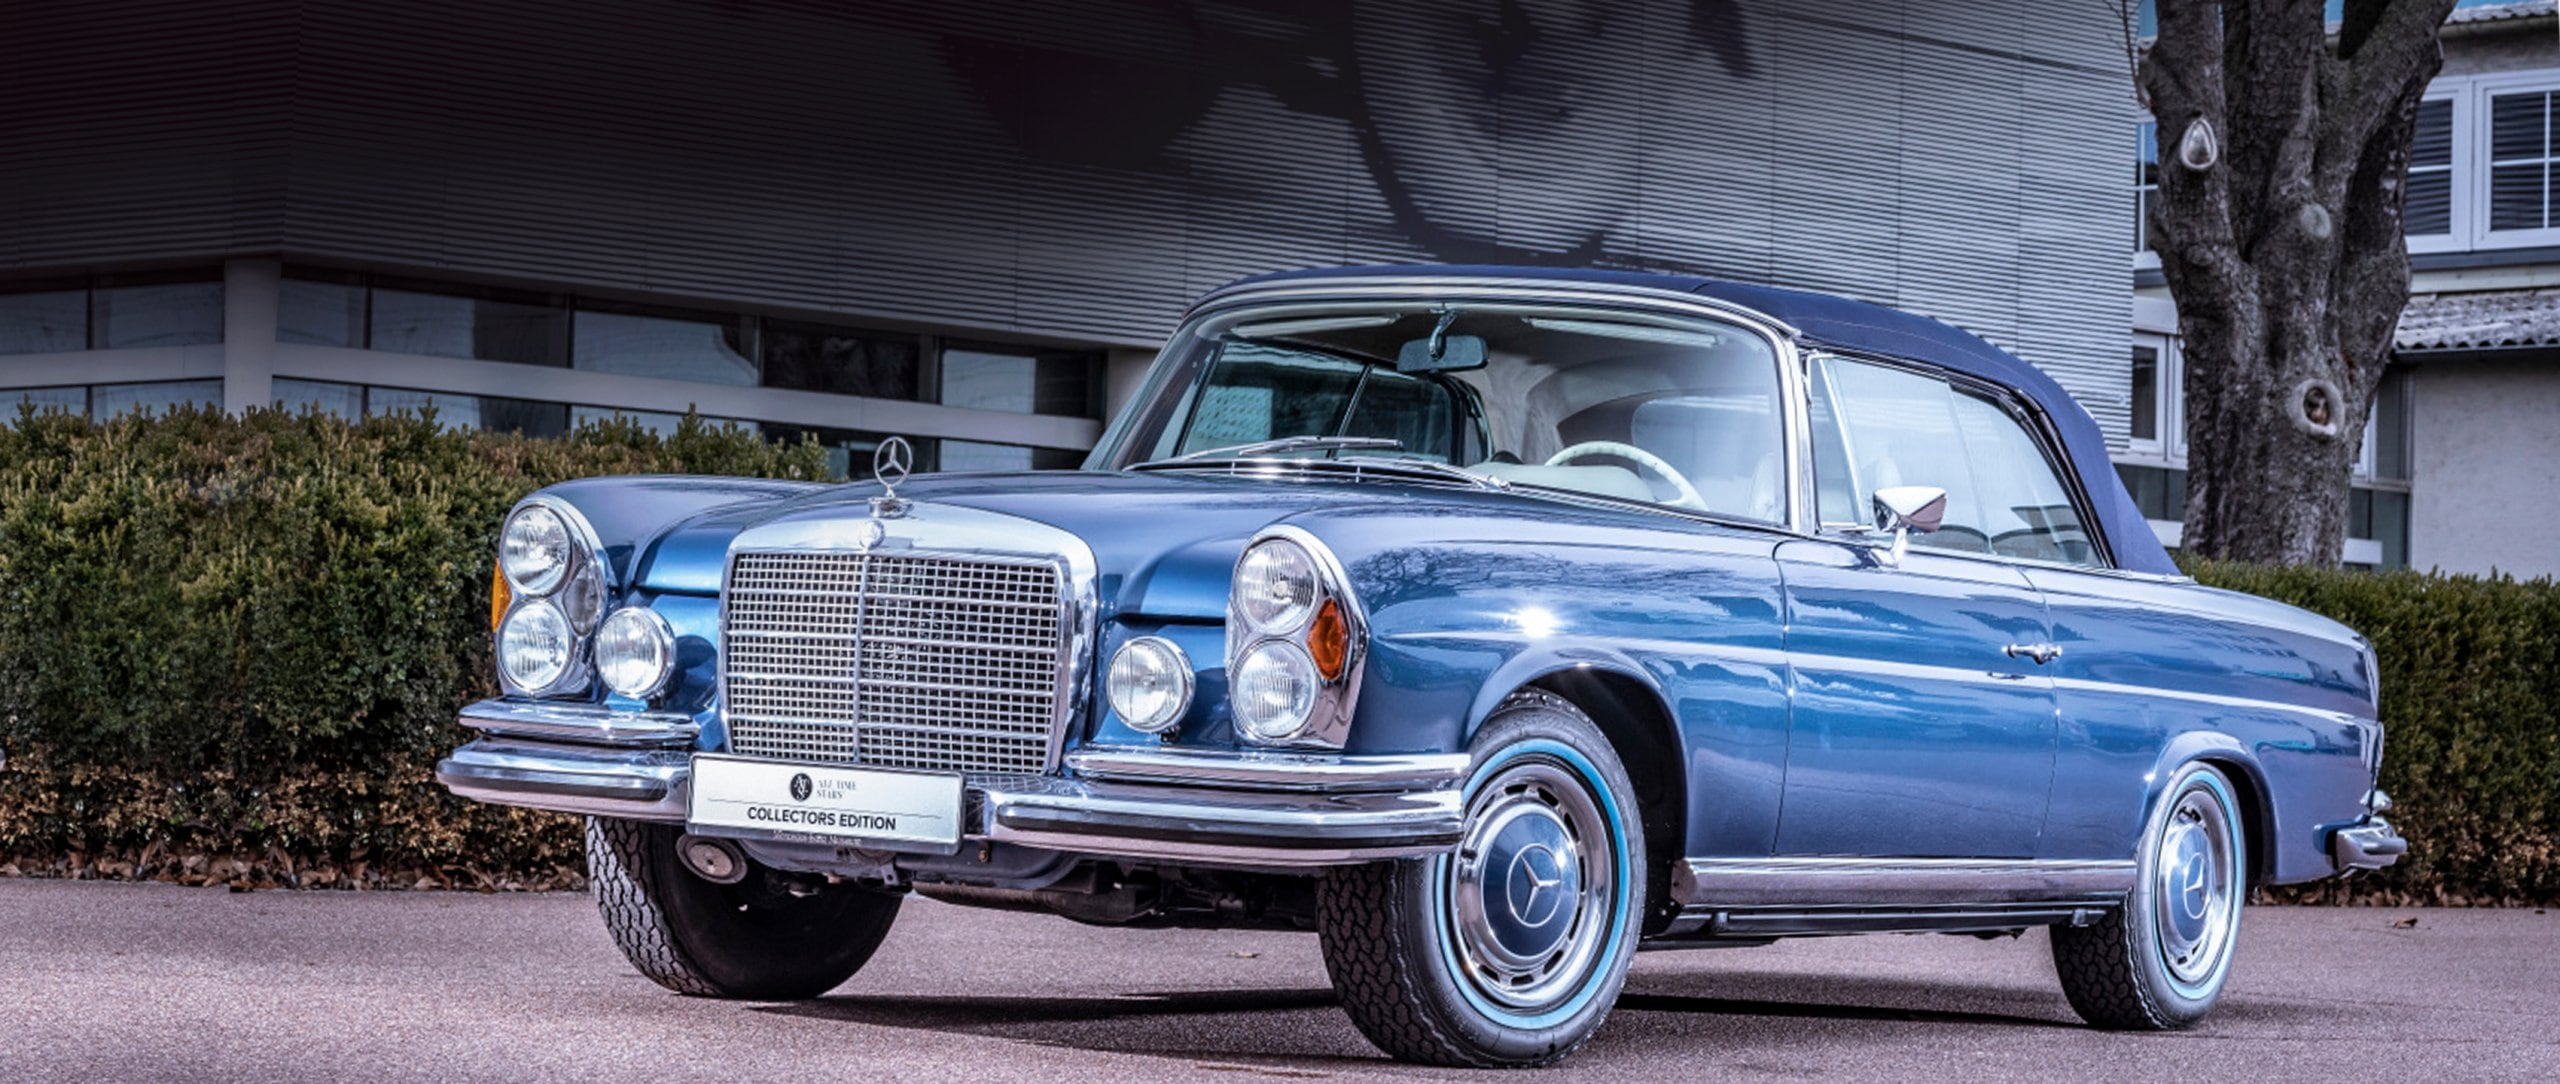 10 tips to perfectly bring your Mercedes-Benz classic car back on the road after winter.